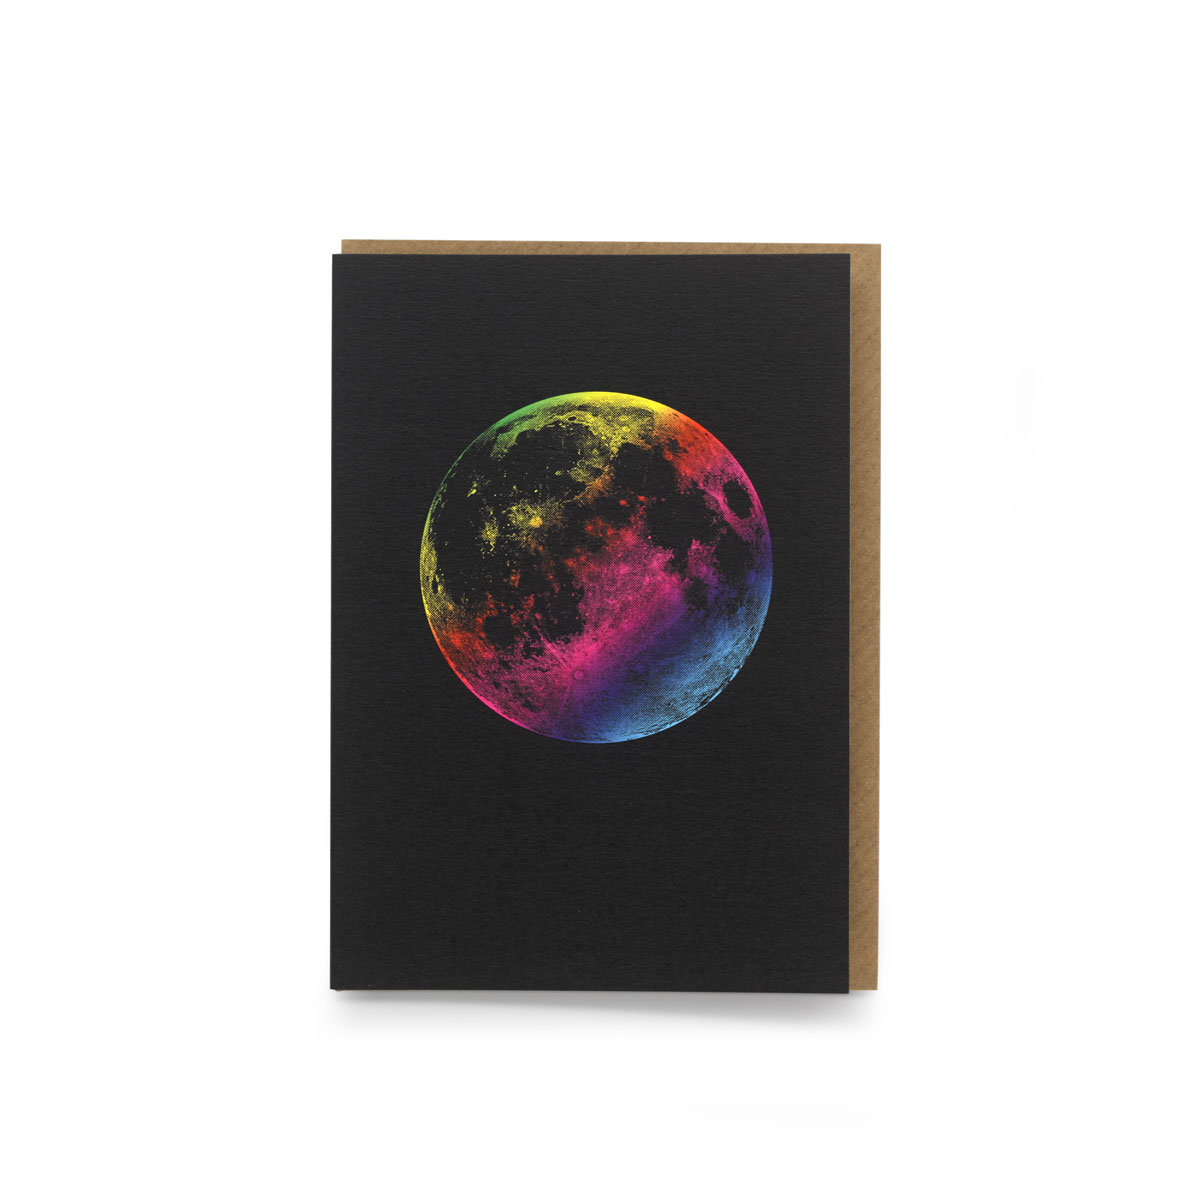 RAINBOW SUPERMOON PRINTED ON 300 GSM PAPER